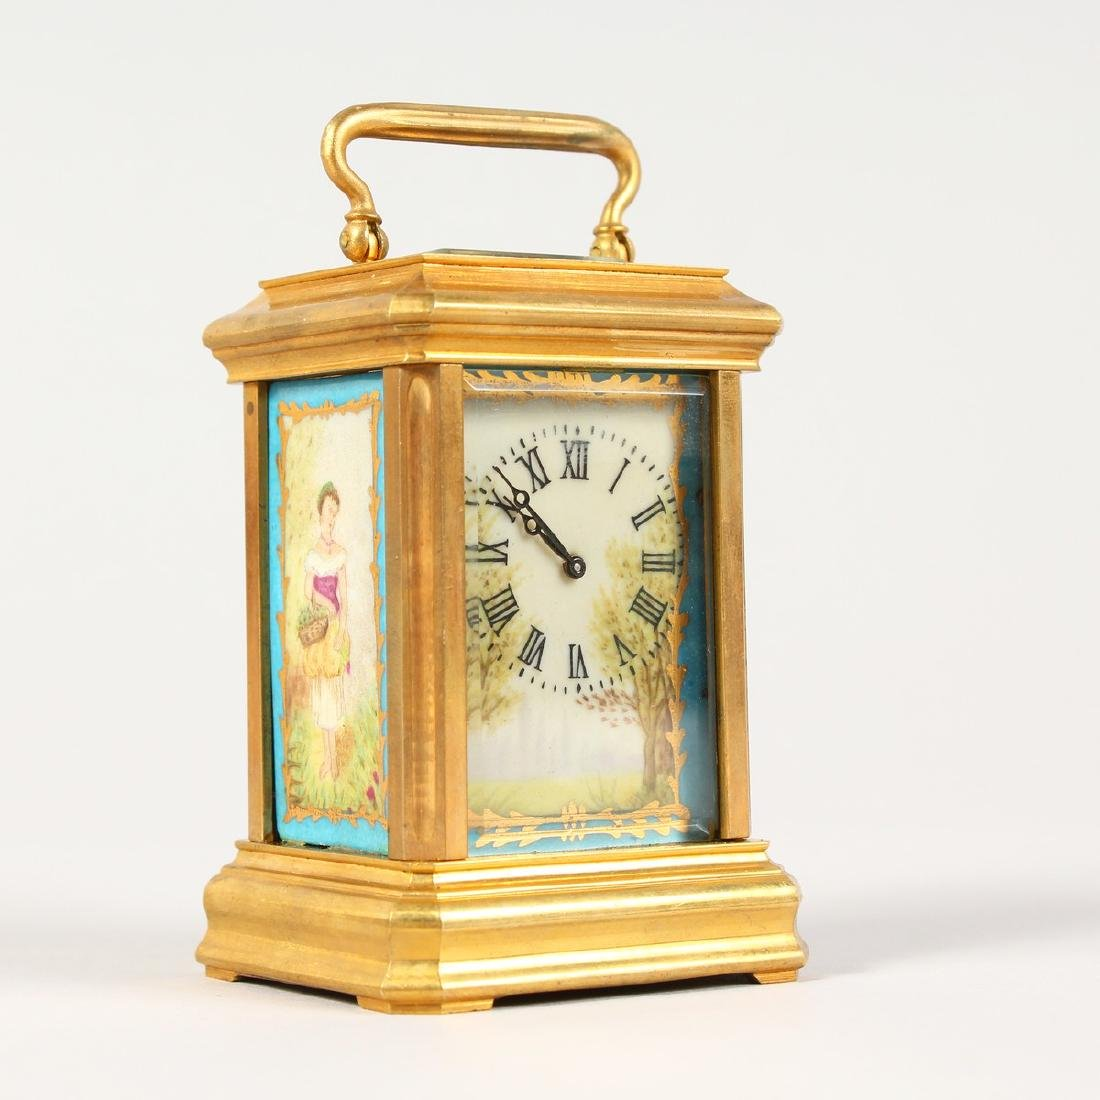 A SEVRES STYLE MINIATURE CARRIAGE CLOCK, with porcelain